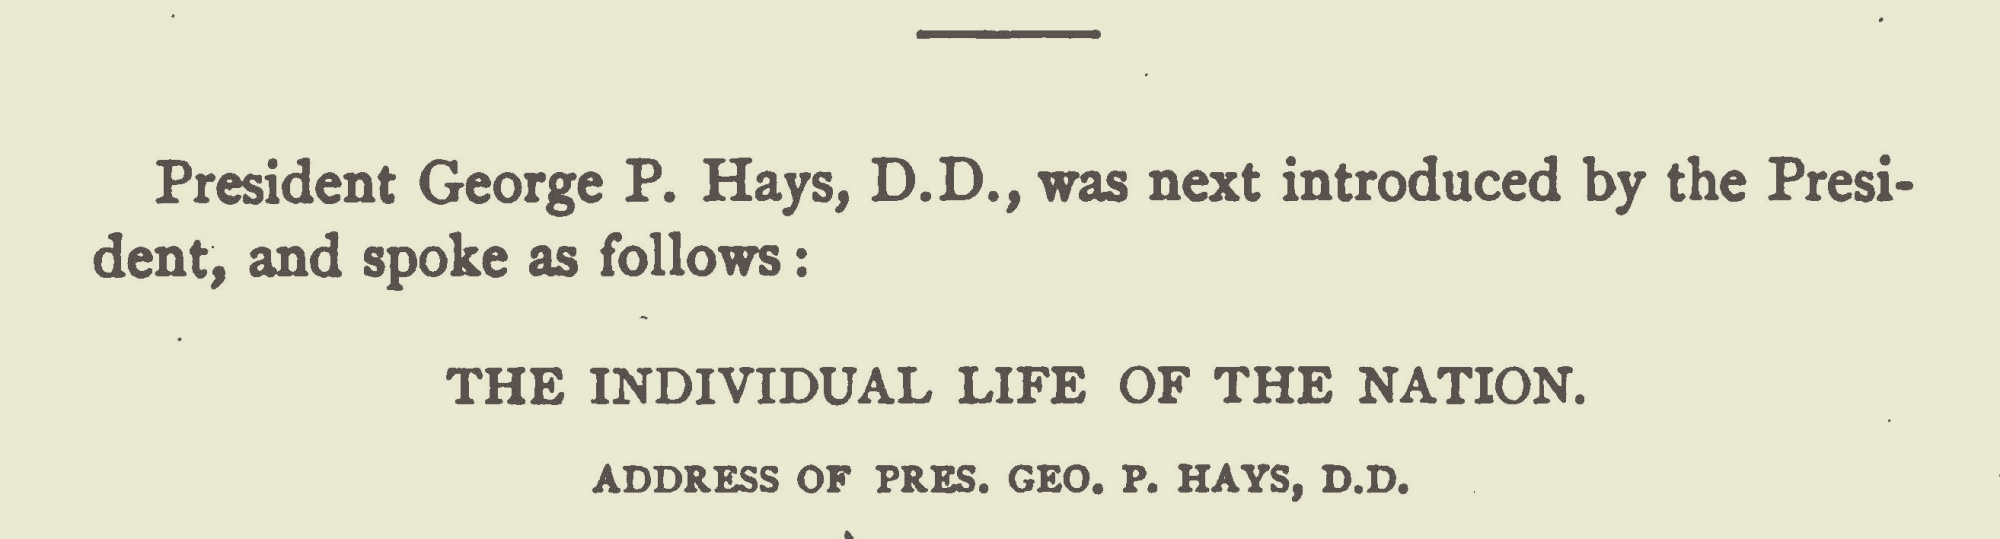 Hays, George Price, The Individual Life of the Nation Title Page.jpg